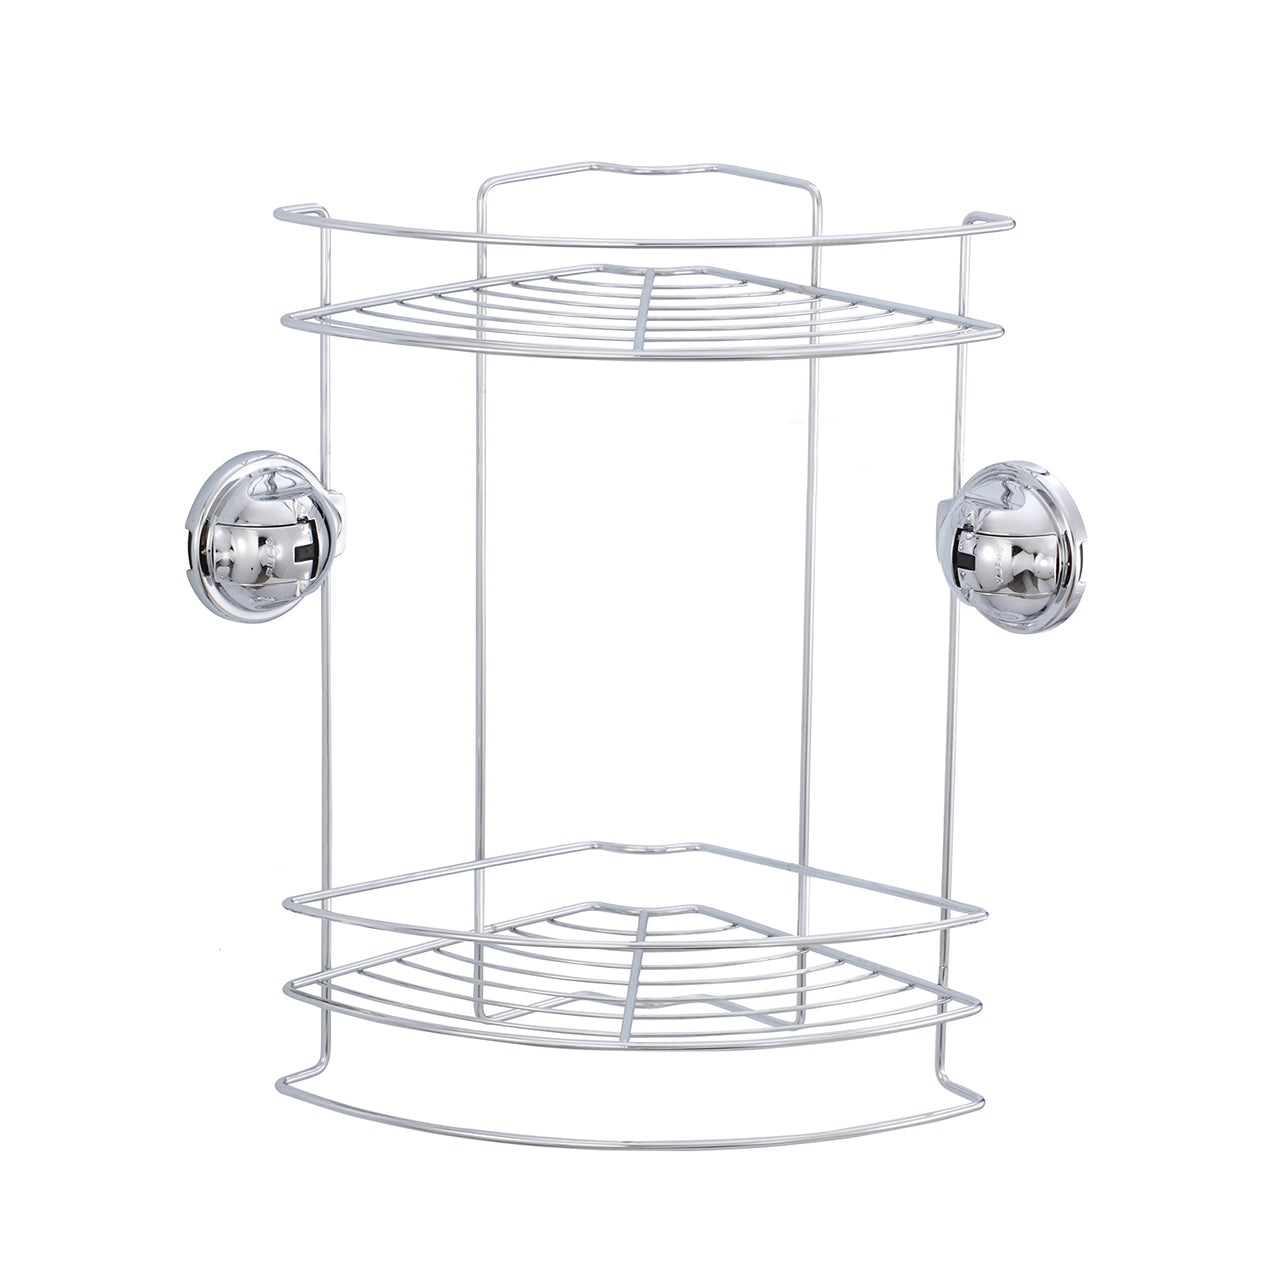 E7 EARL STAINLESS STEEL DOUBLE CORNER BASKET SET